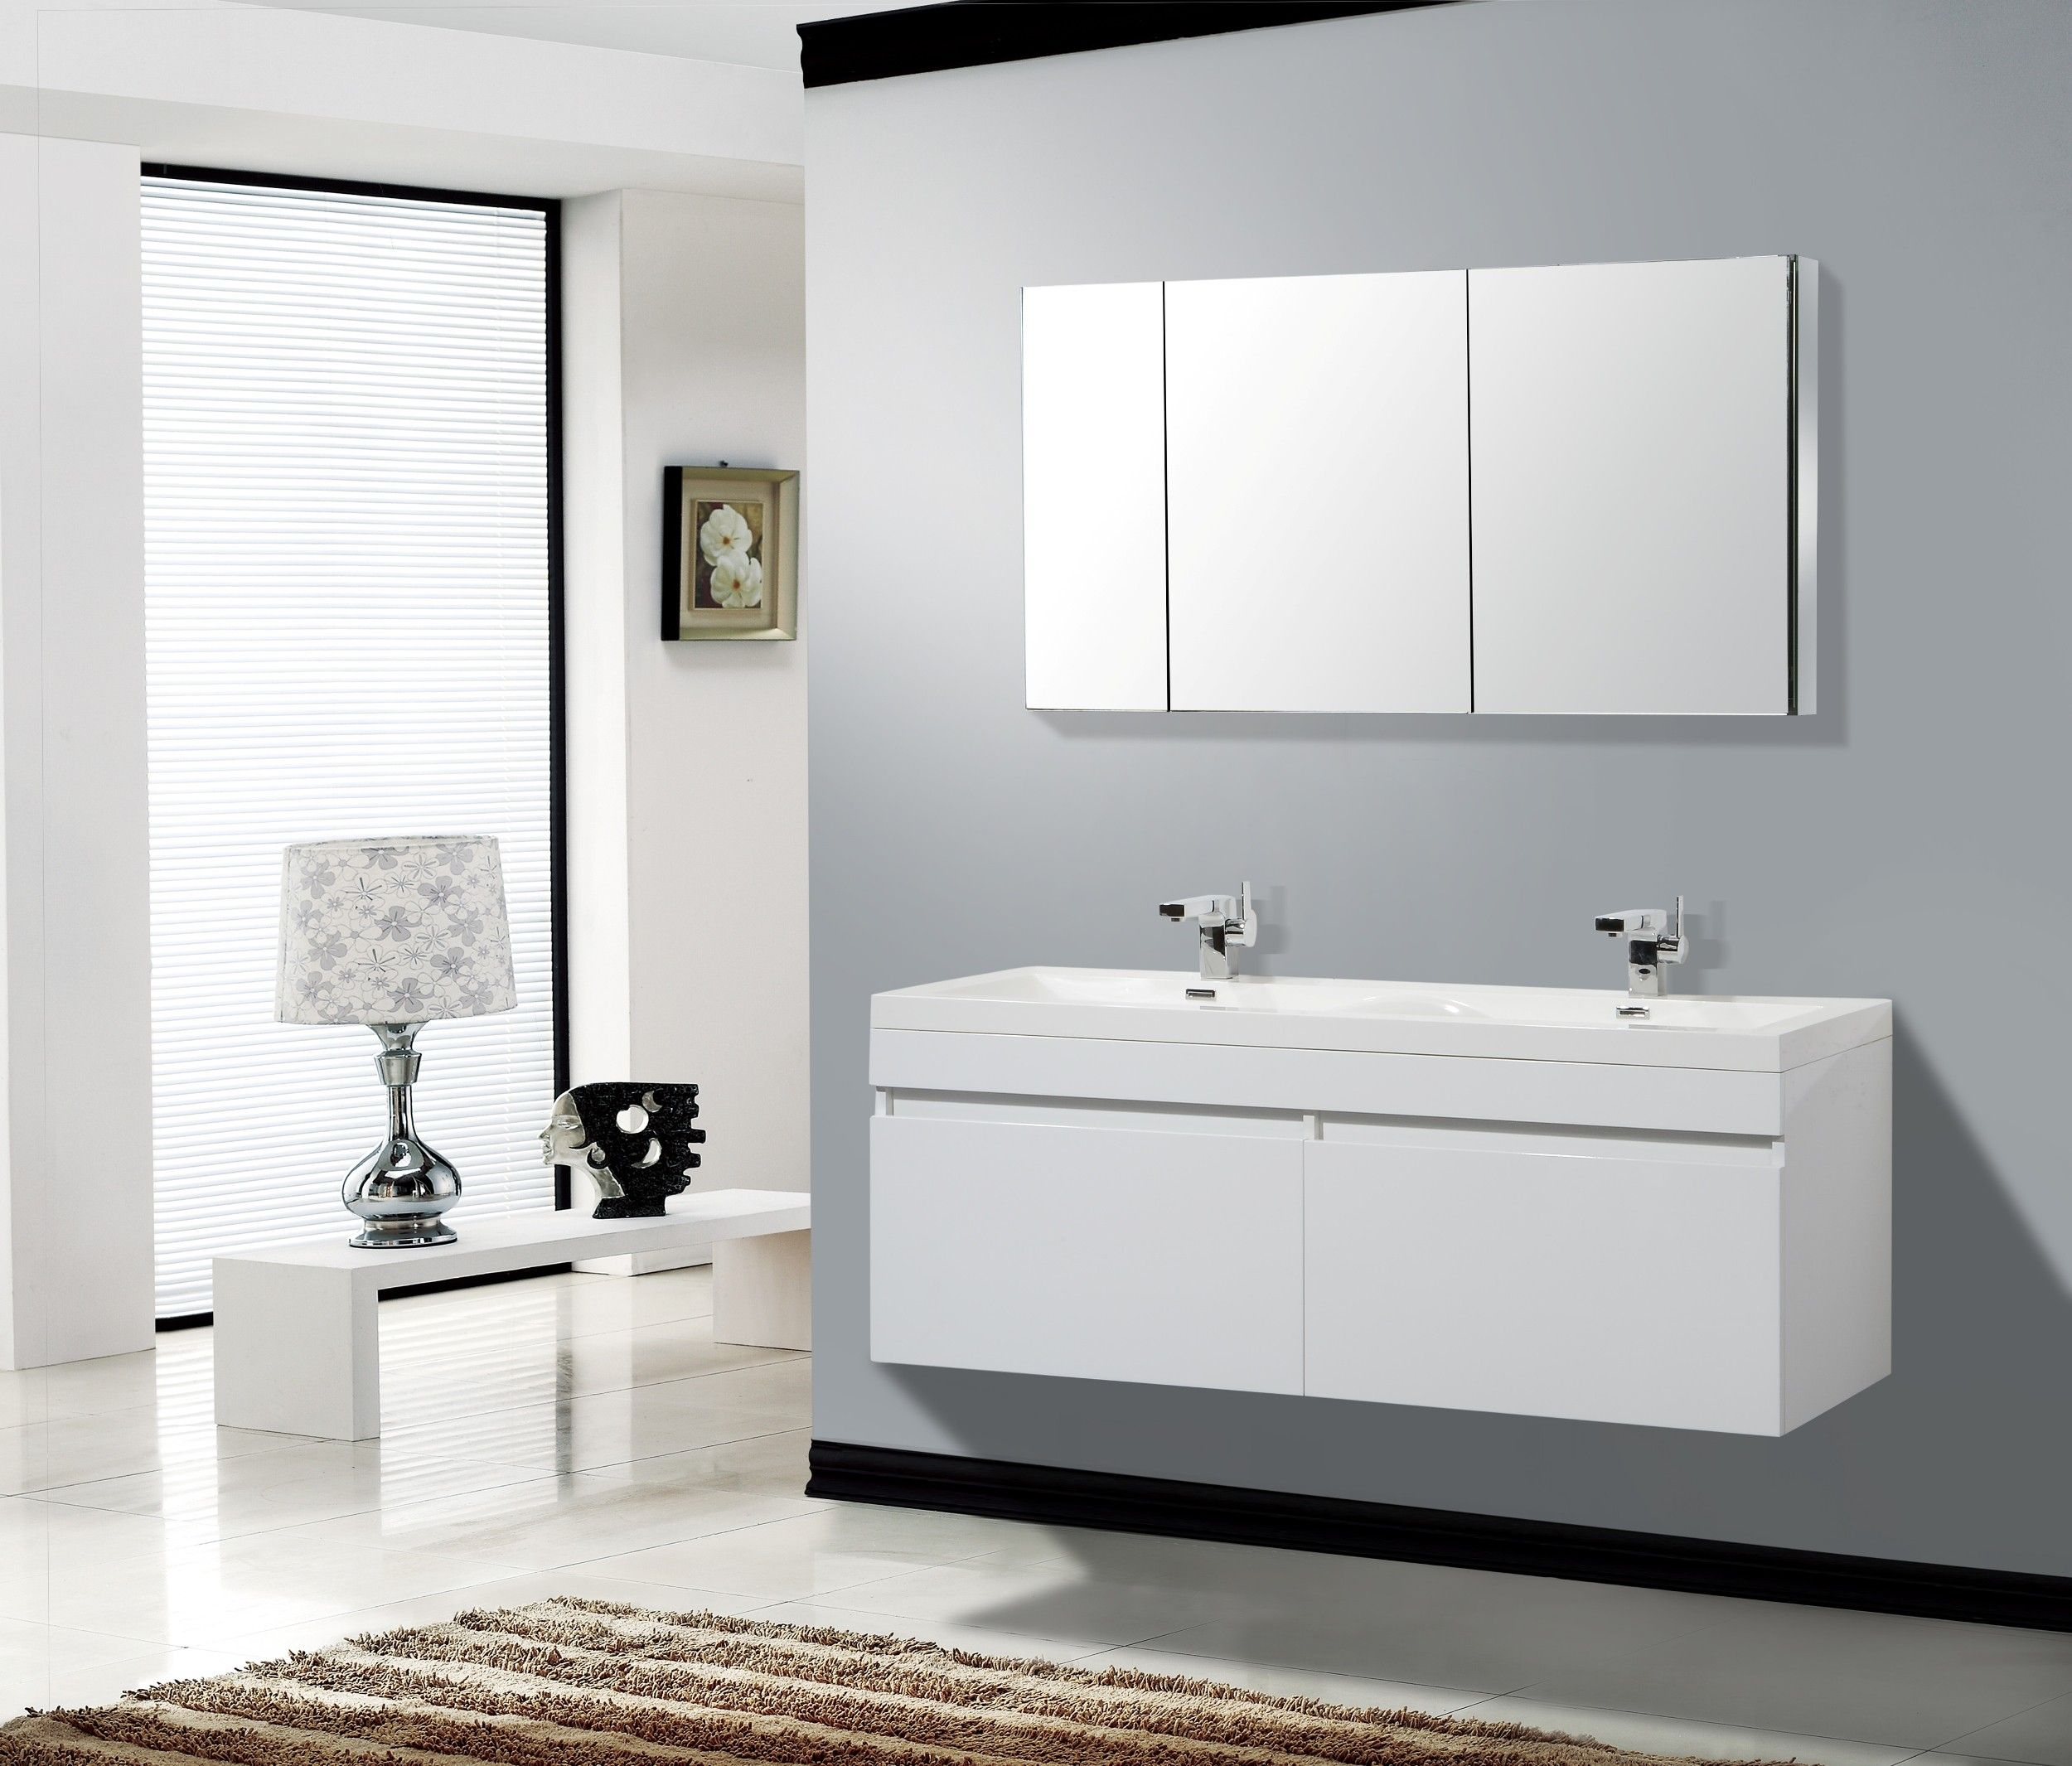 Aqua Decor Hailey 56 Inch Double Modern Bathroom Vanity Set W Medicine Cabinet White Modern White Bathroom White Vanity Bathroom Modern Bathroom Vanity